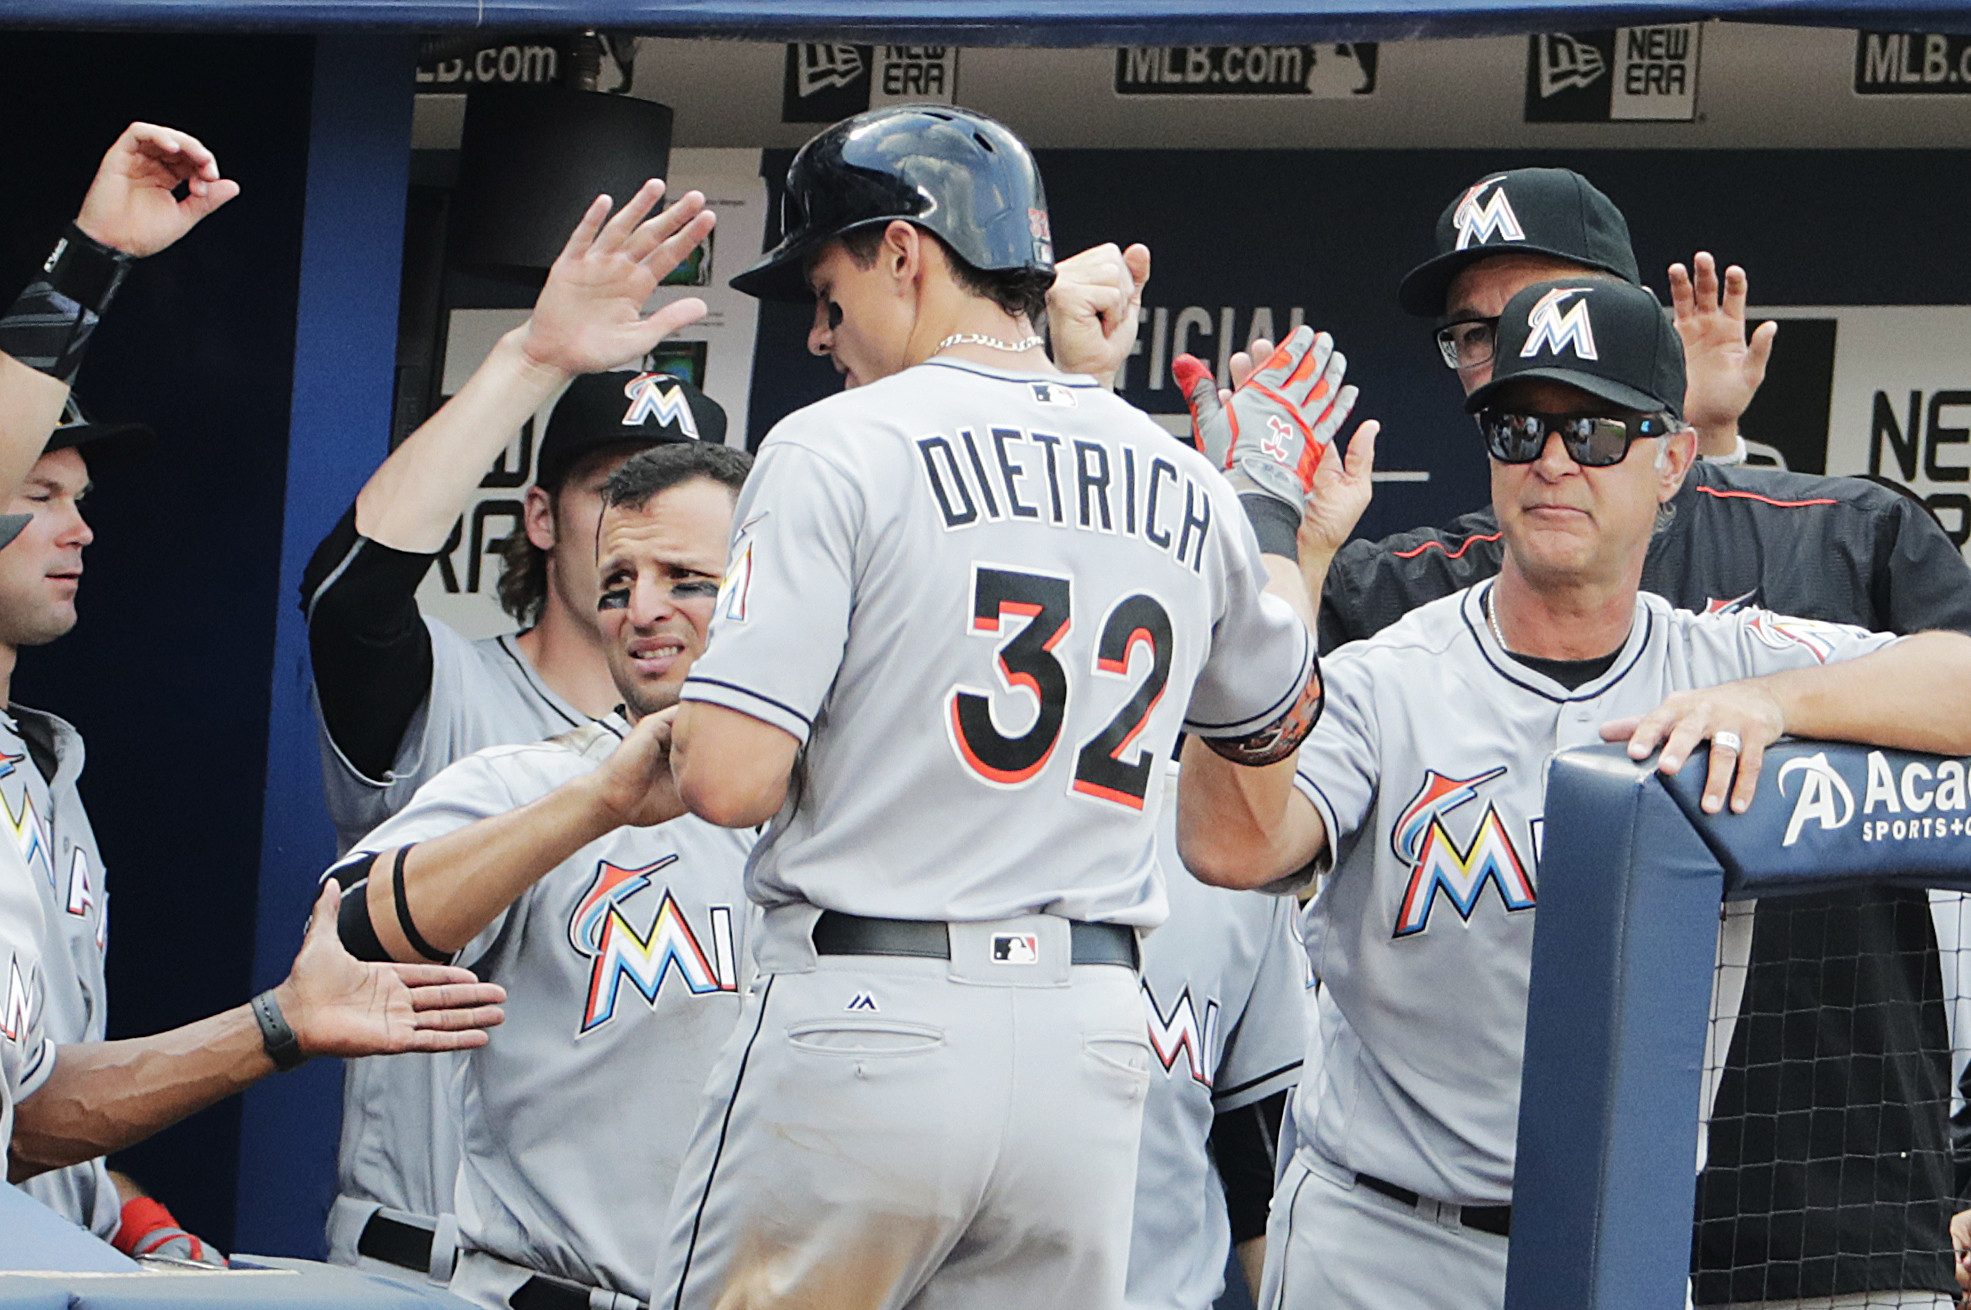 Sfl-dietrich-powers-marlins-past-braves-7-3-to-avoid-sweep-20160529